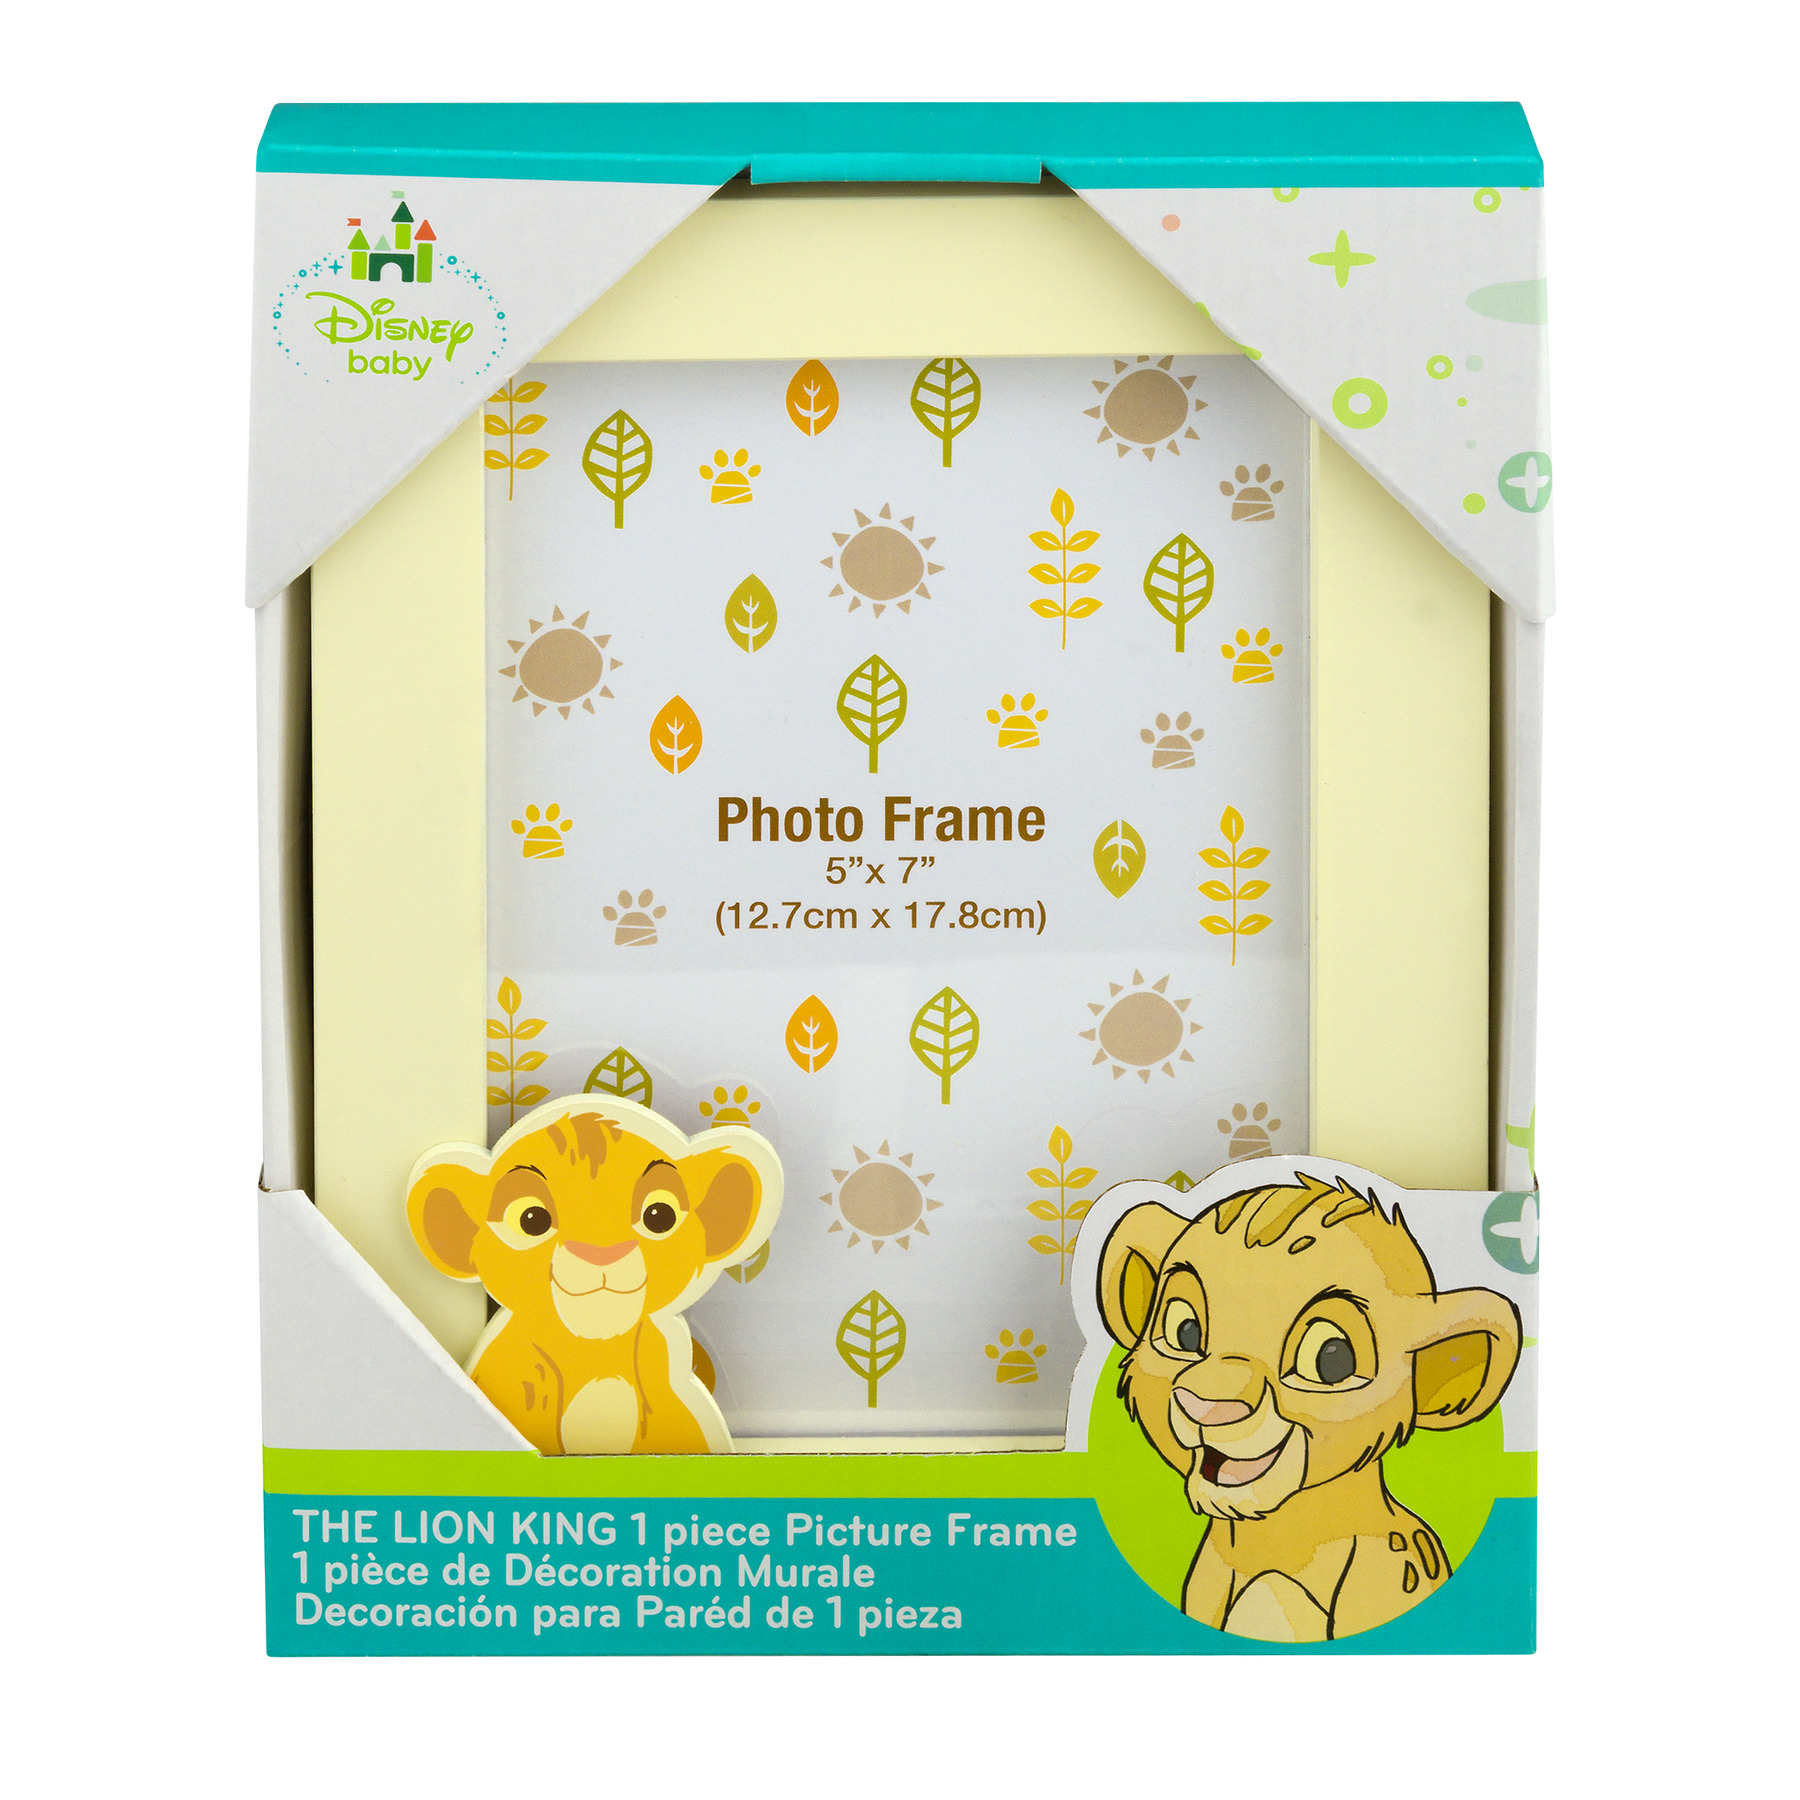 Disney Baby Picture Frame, The Lion King, 1.0 CT